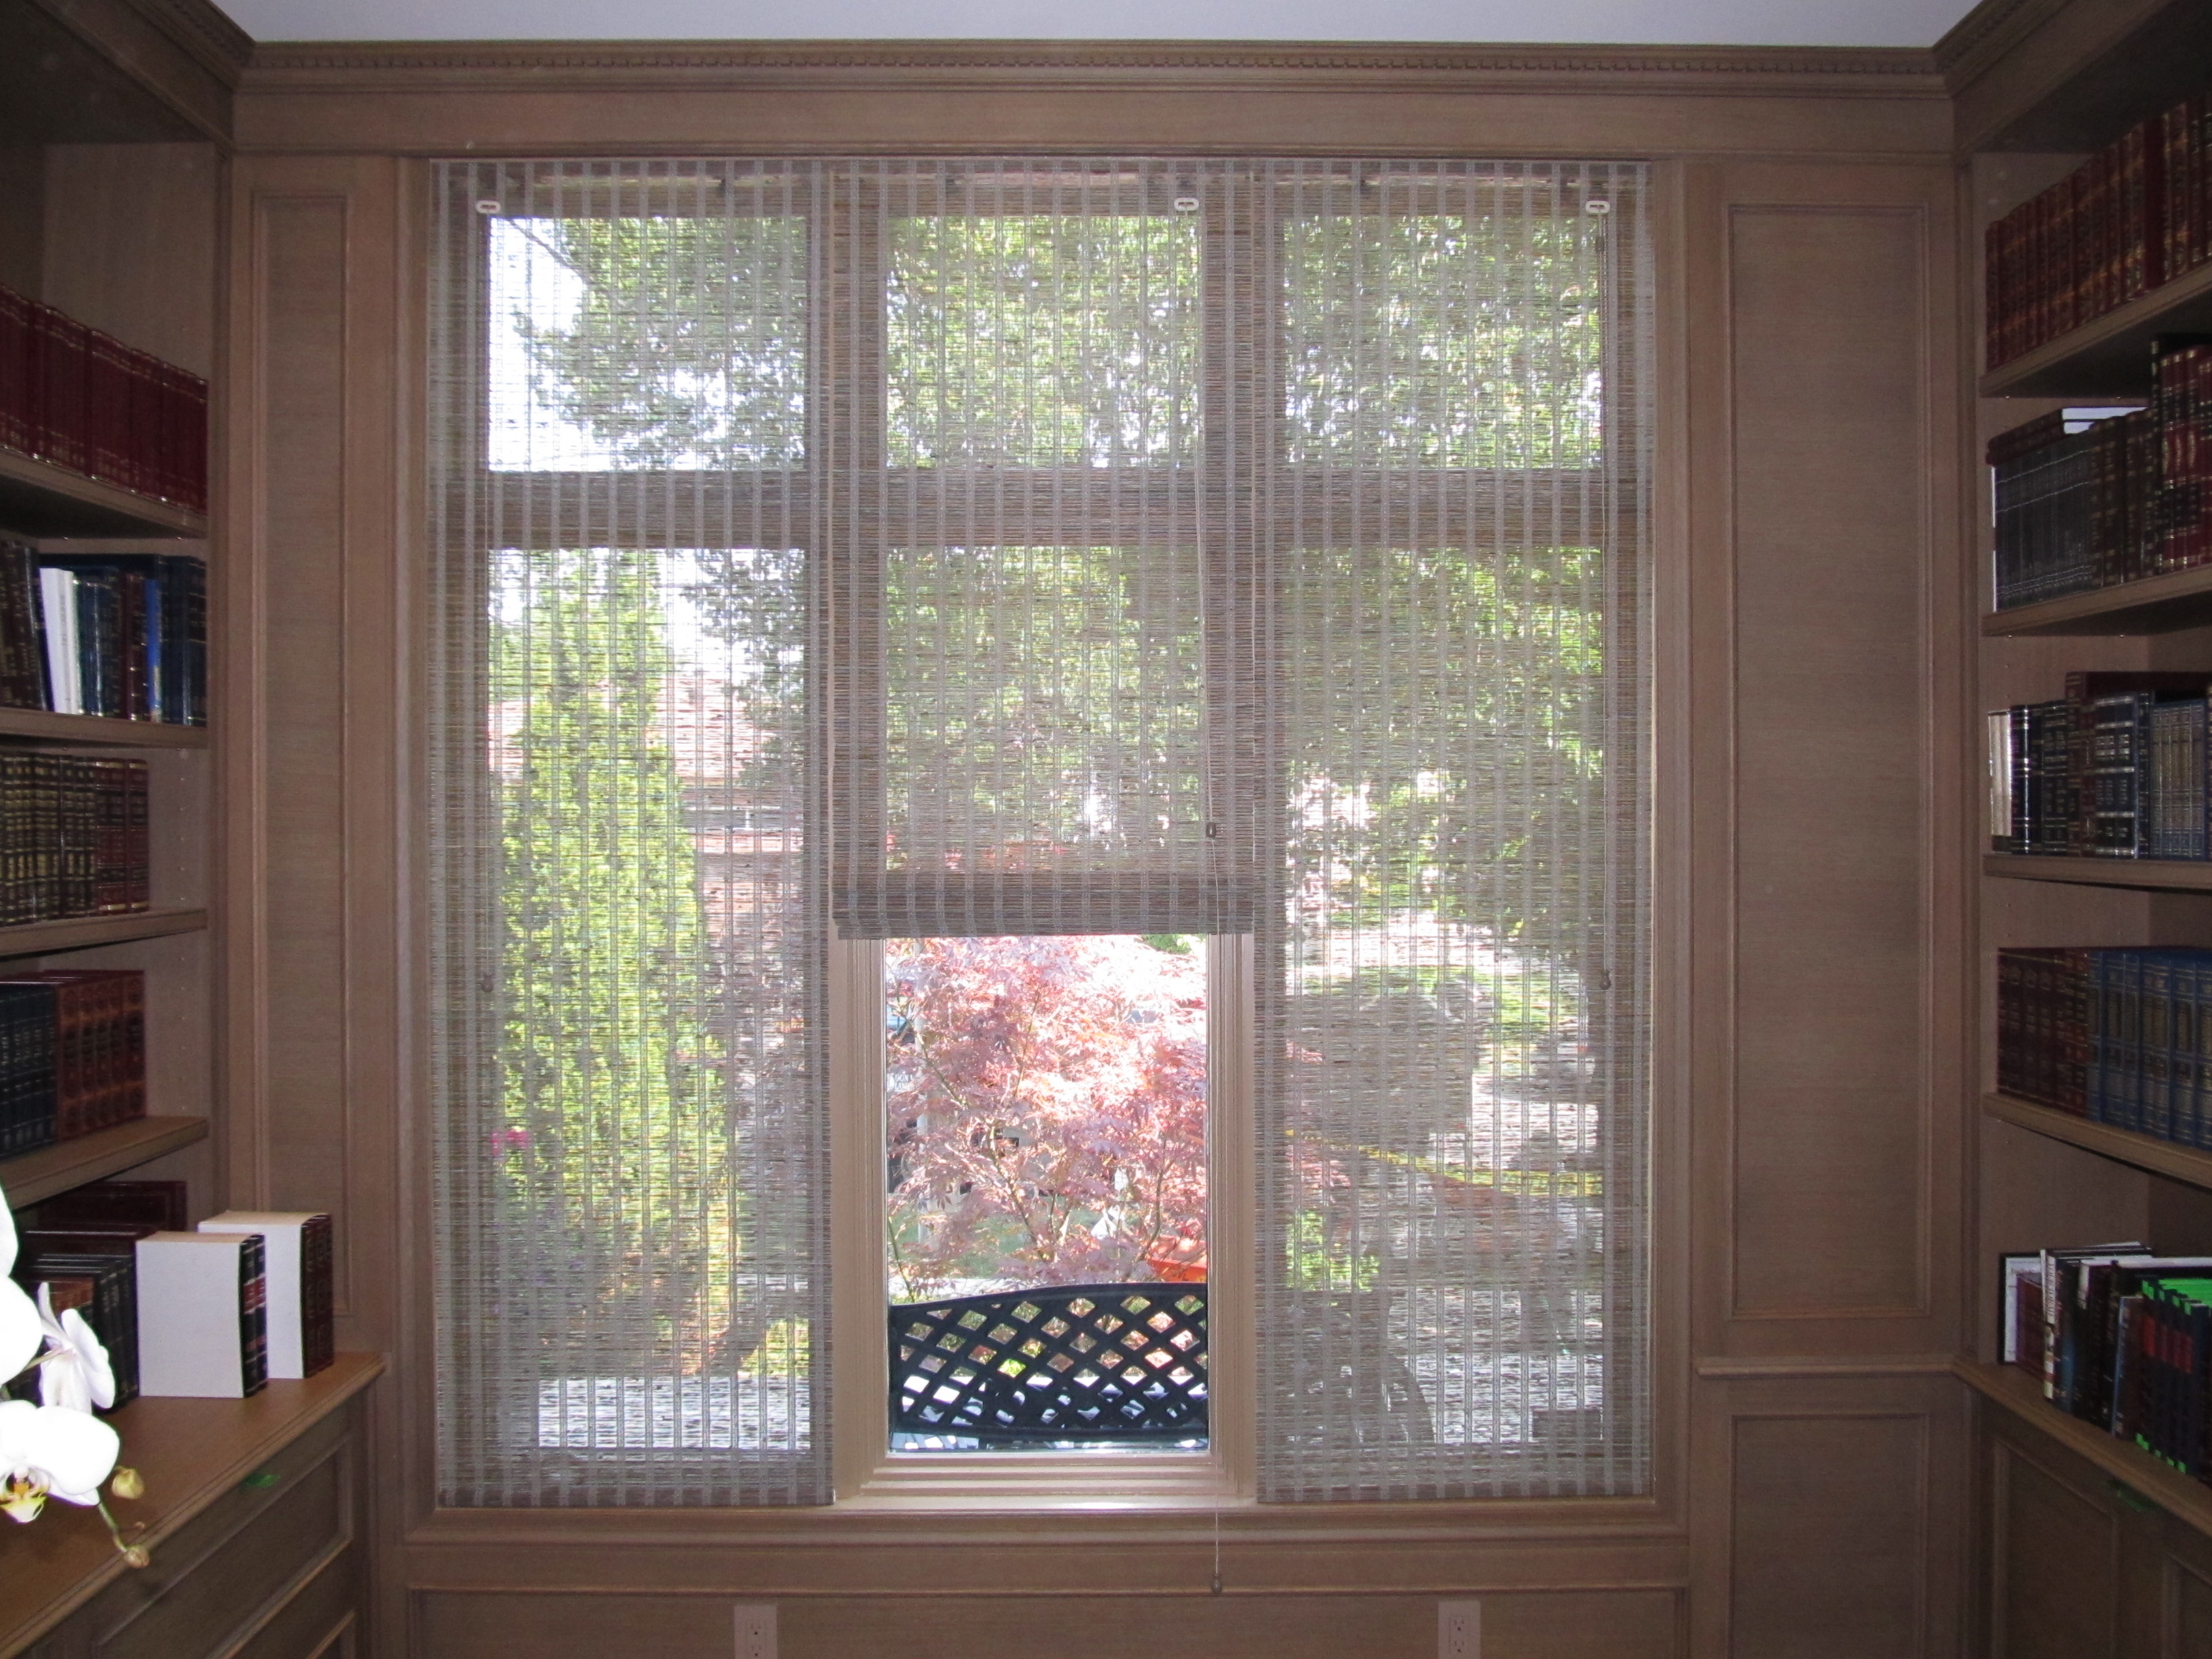 creations wordpress no tag woven comments frame wood valance shades window